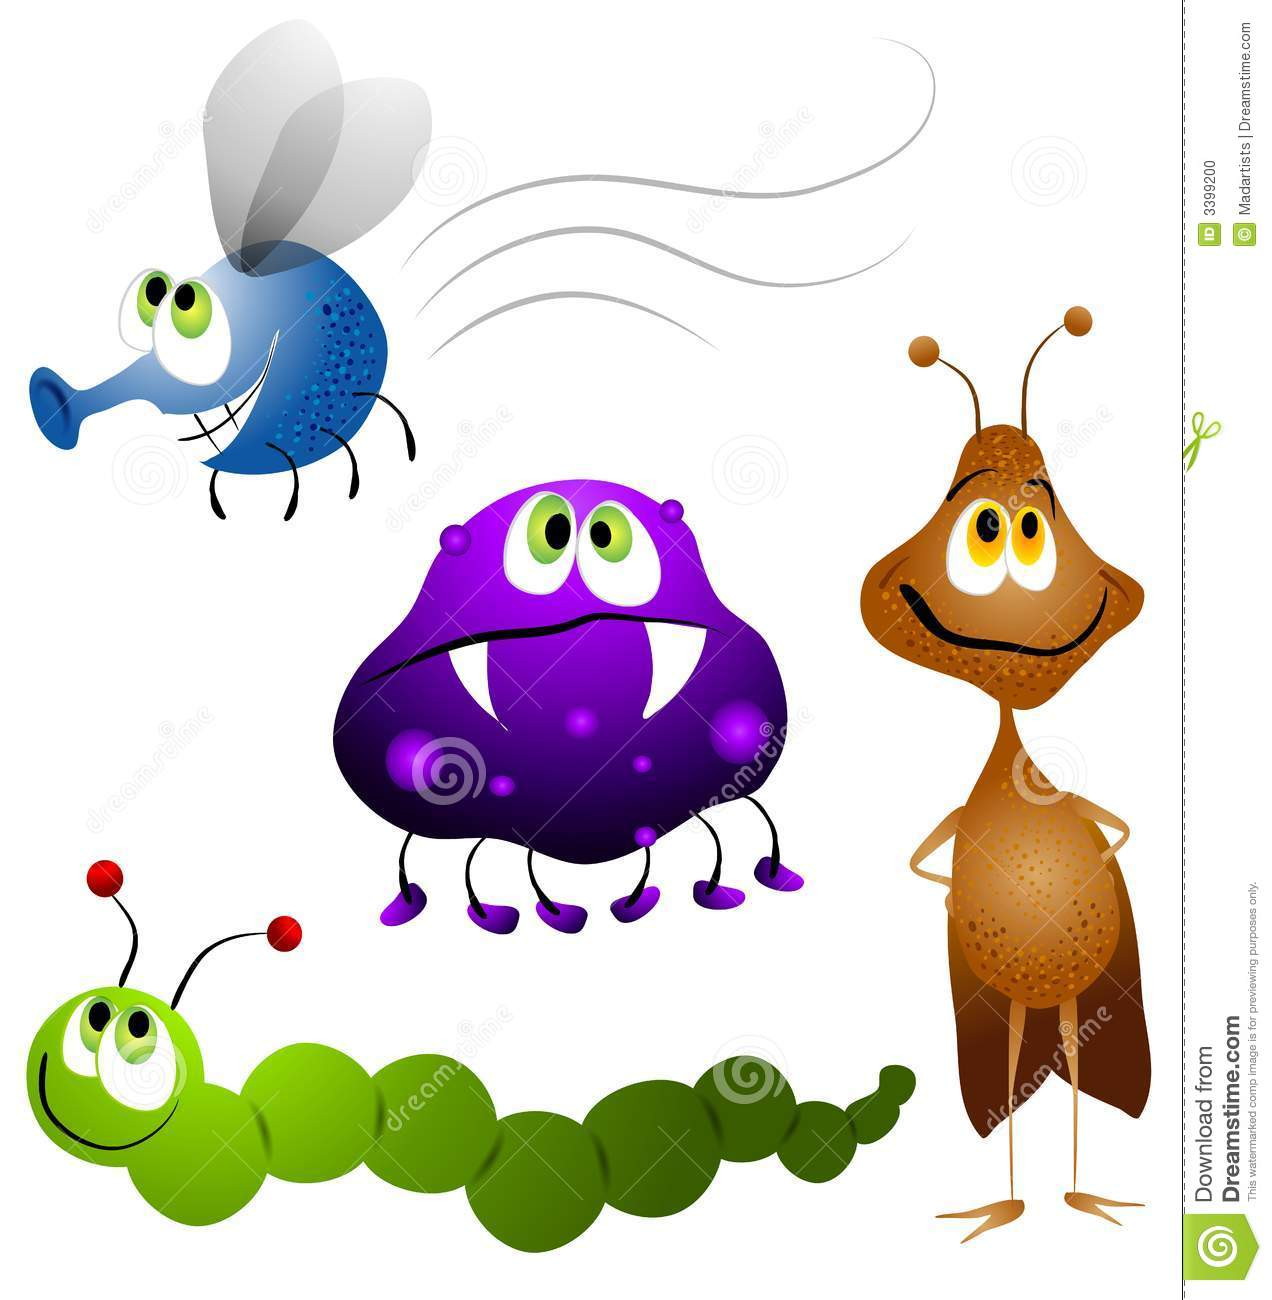 ugly cartoon bugs insects stock illustration illustration of rh dreamstime com clipart bags clipart bus